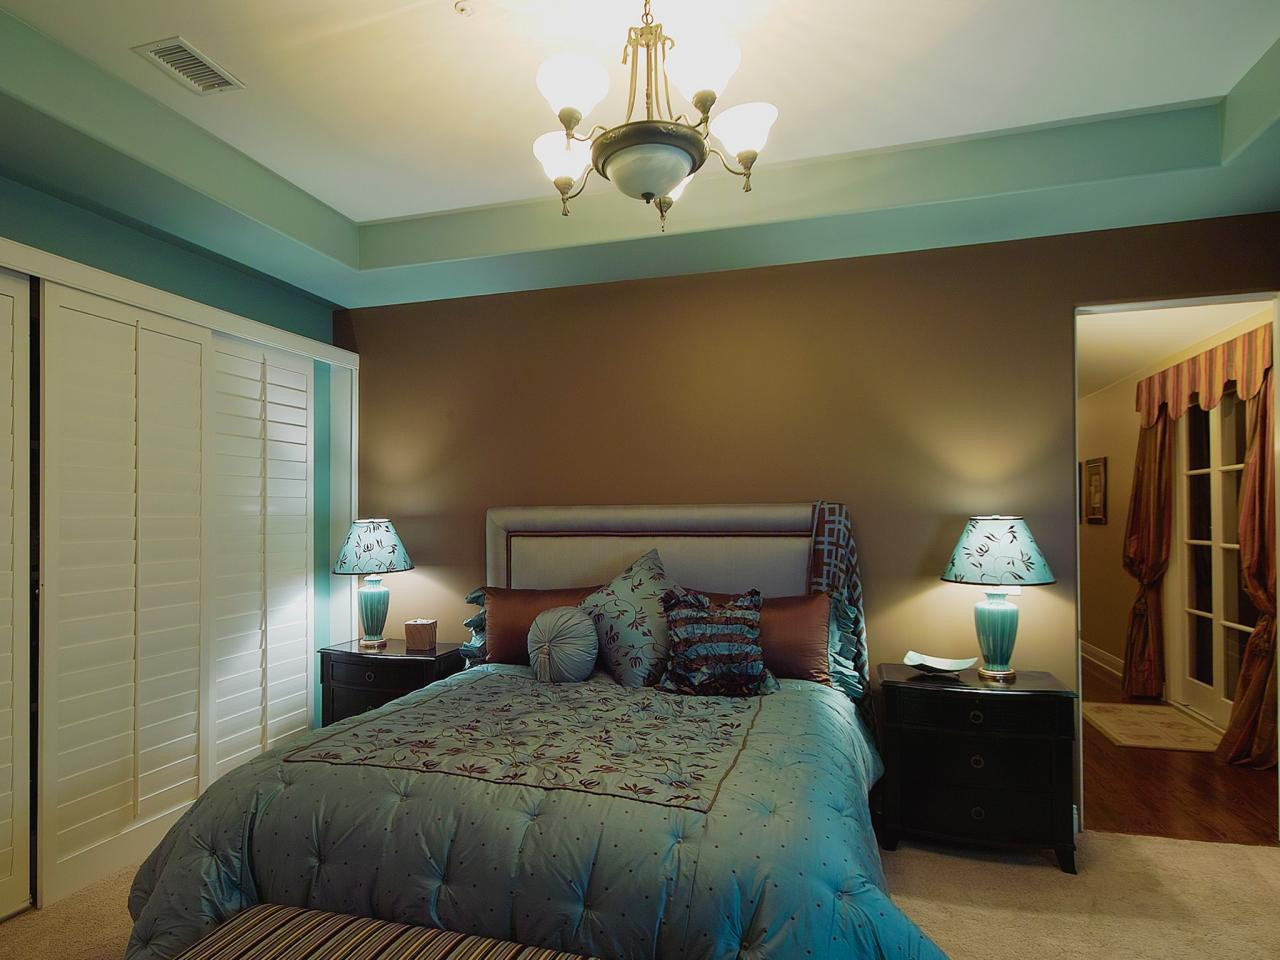 Photos hgtv Brown color bedroom